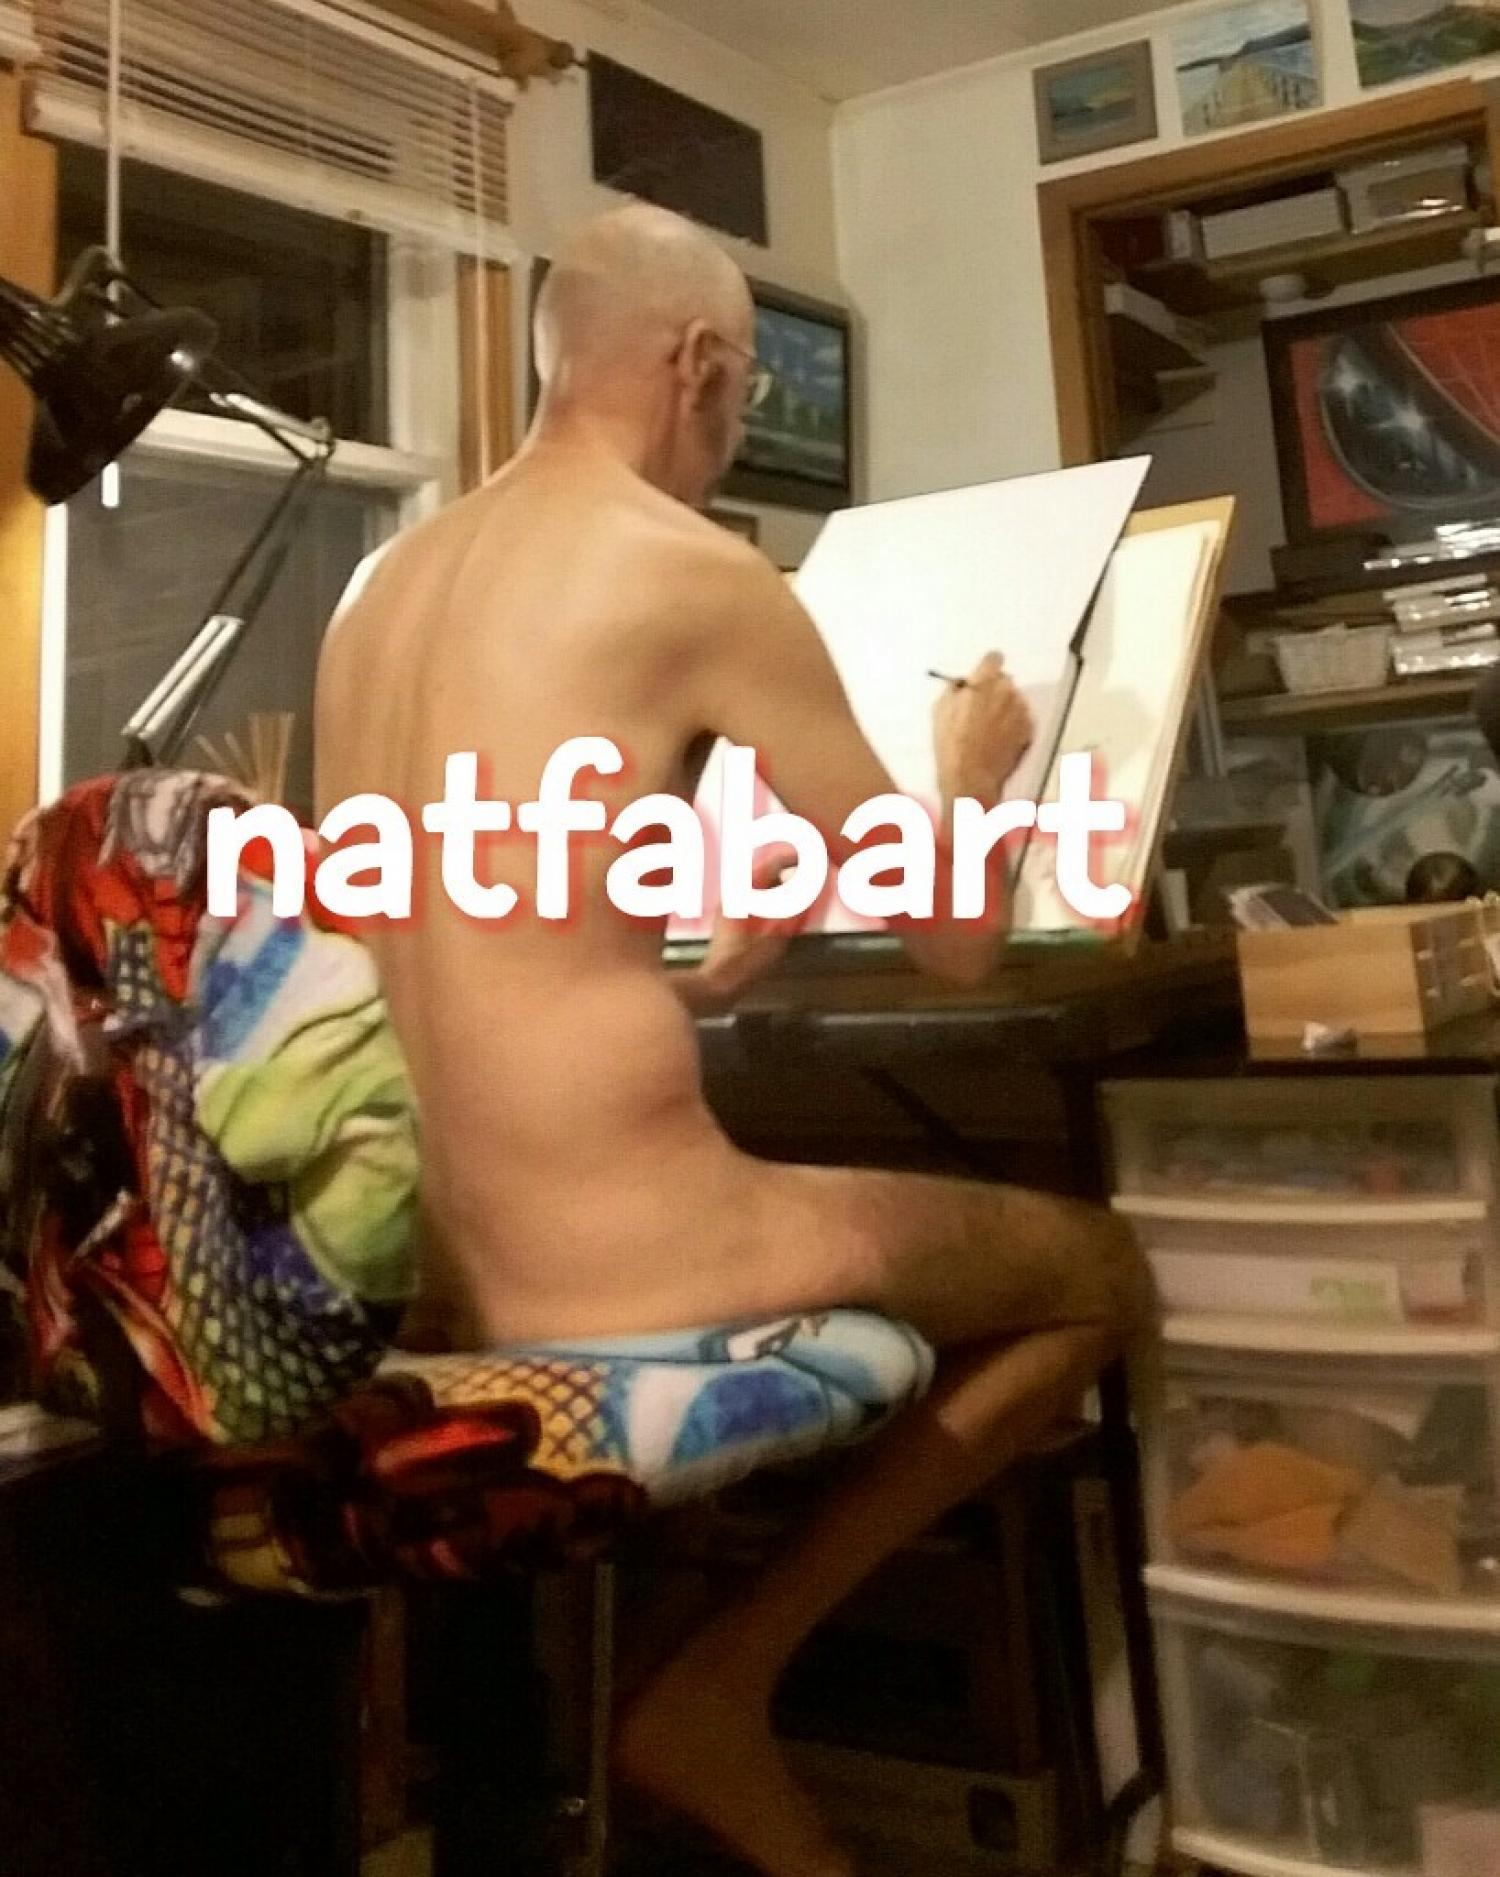 natfabart cover photo